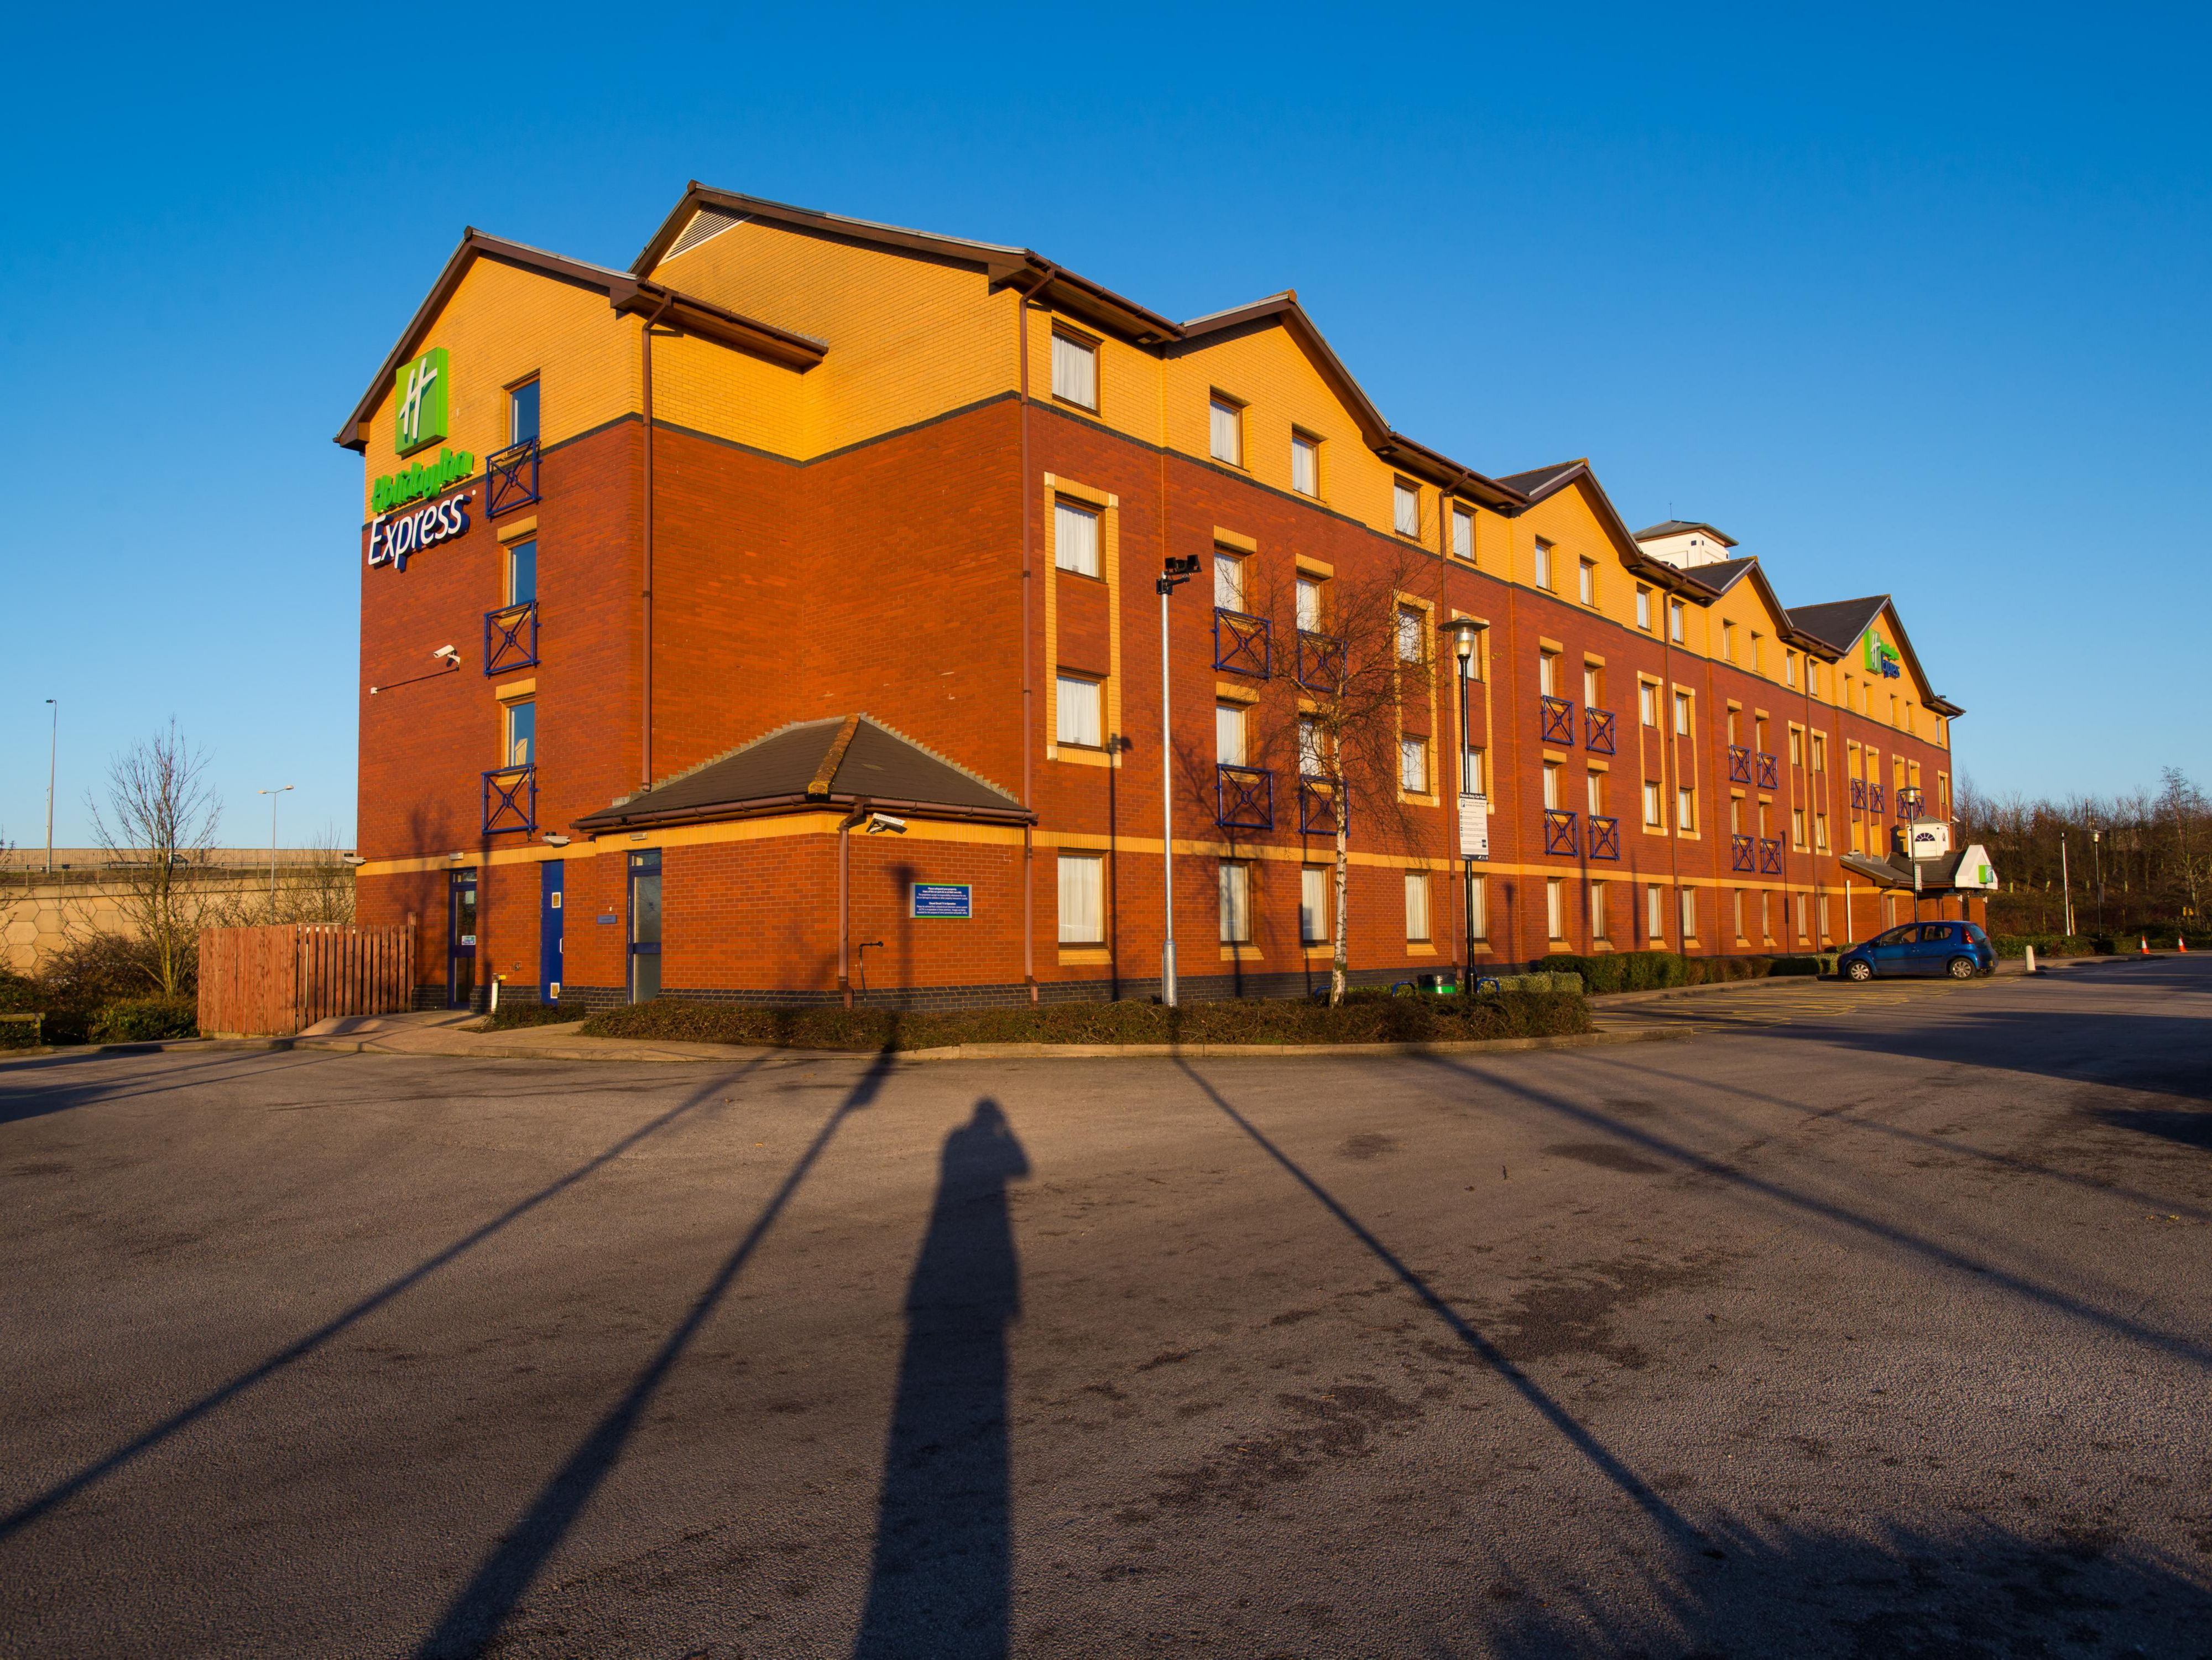 Like great value for money? You'll love our hotel in Stoke